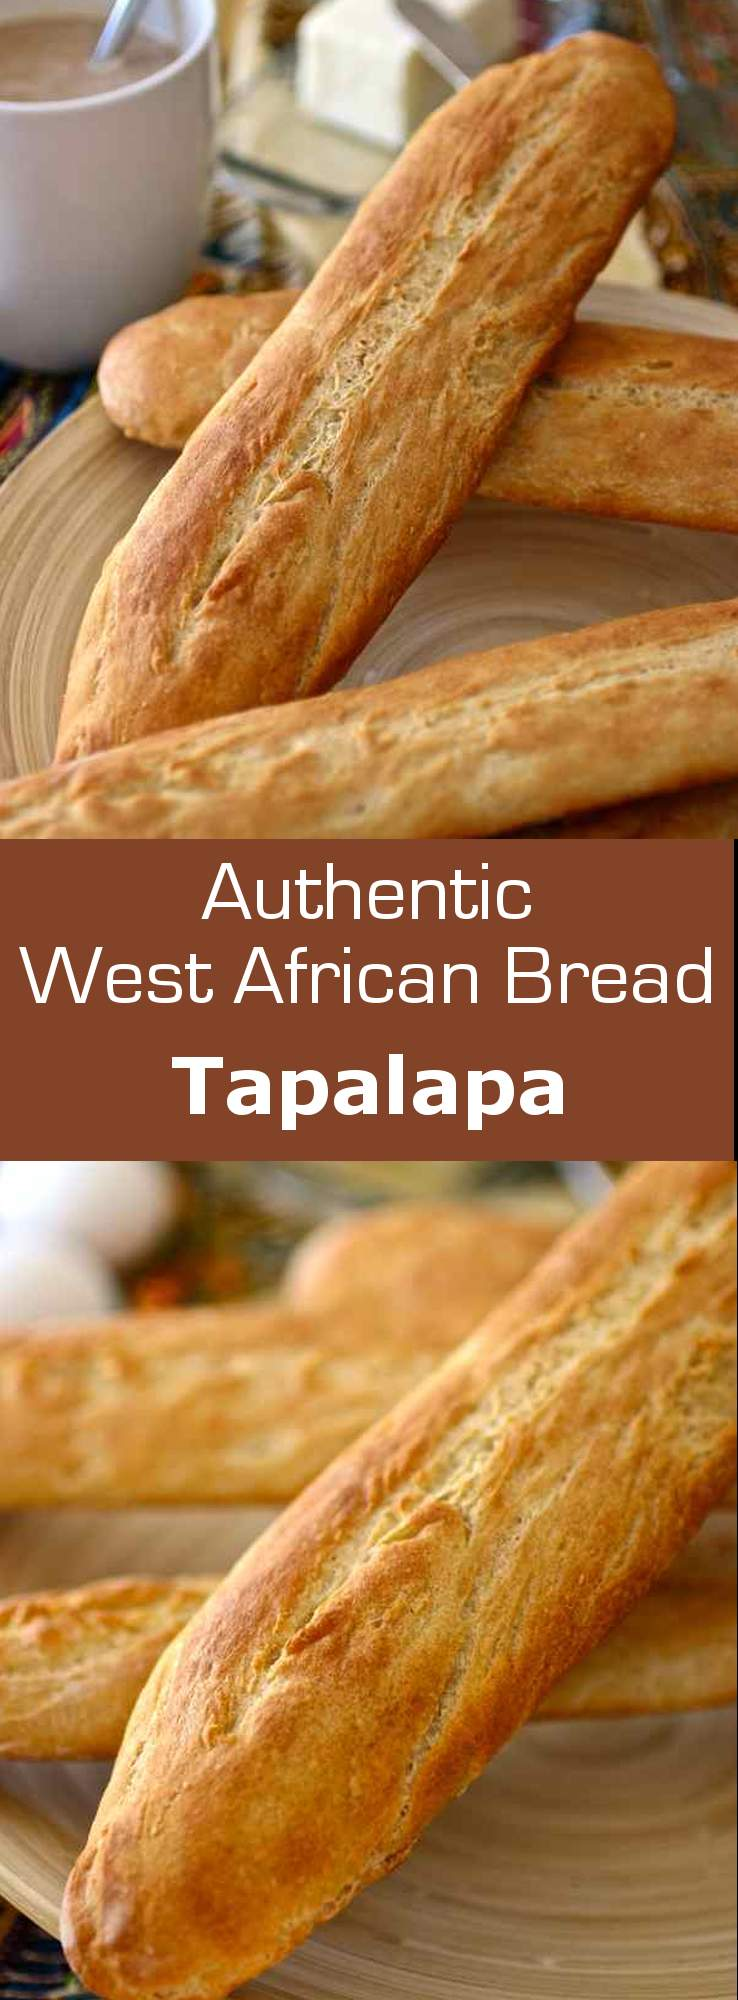 Tapalapa is a popular West African bread, similar to baguette, prepared with a mix of wheat, millet, maize and cowpea (niébé) flours. #gambia #senegal #guinea #africa #bread #196flavors